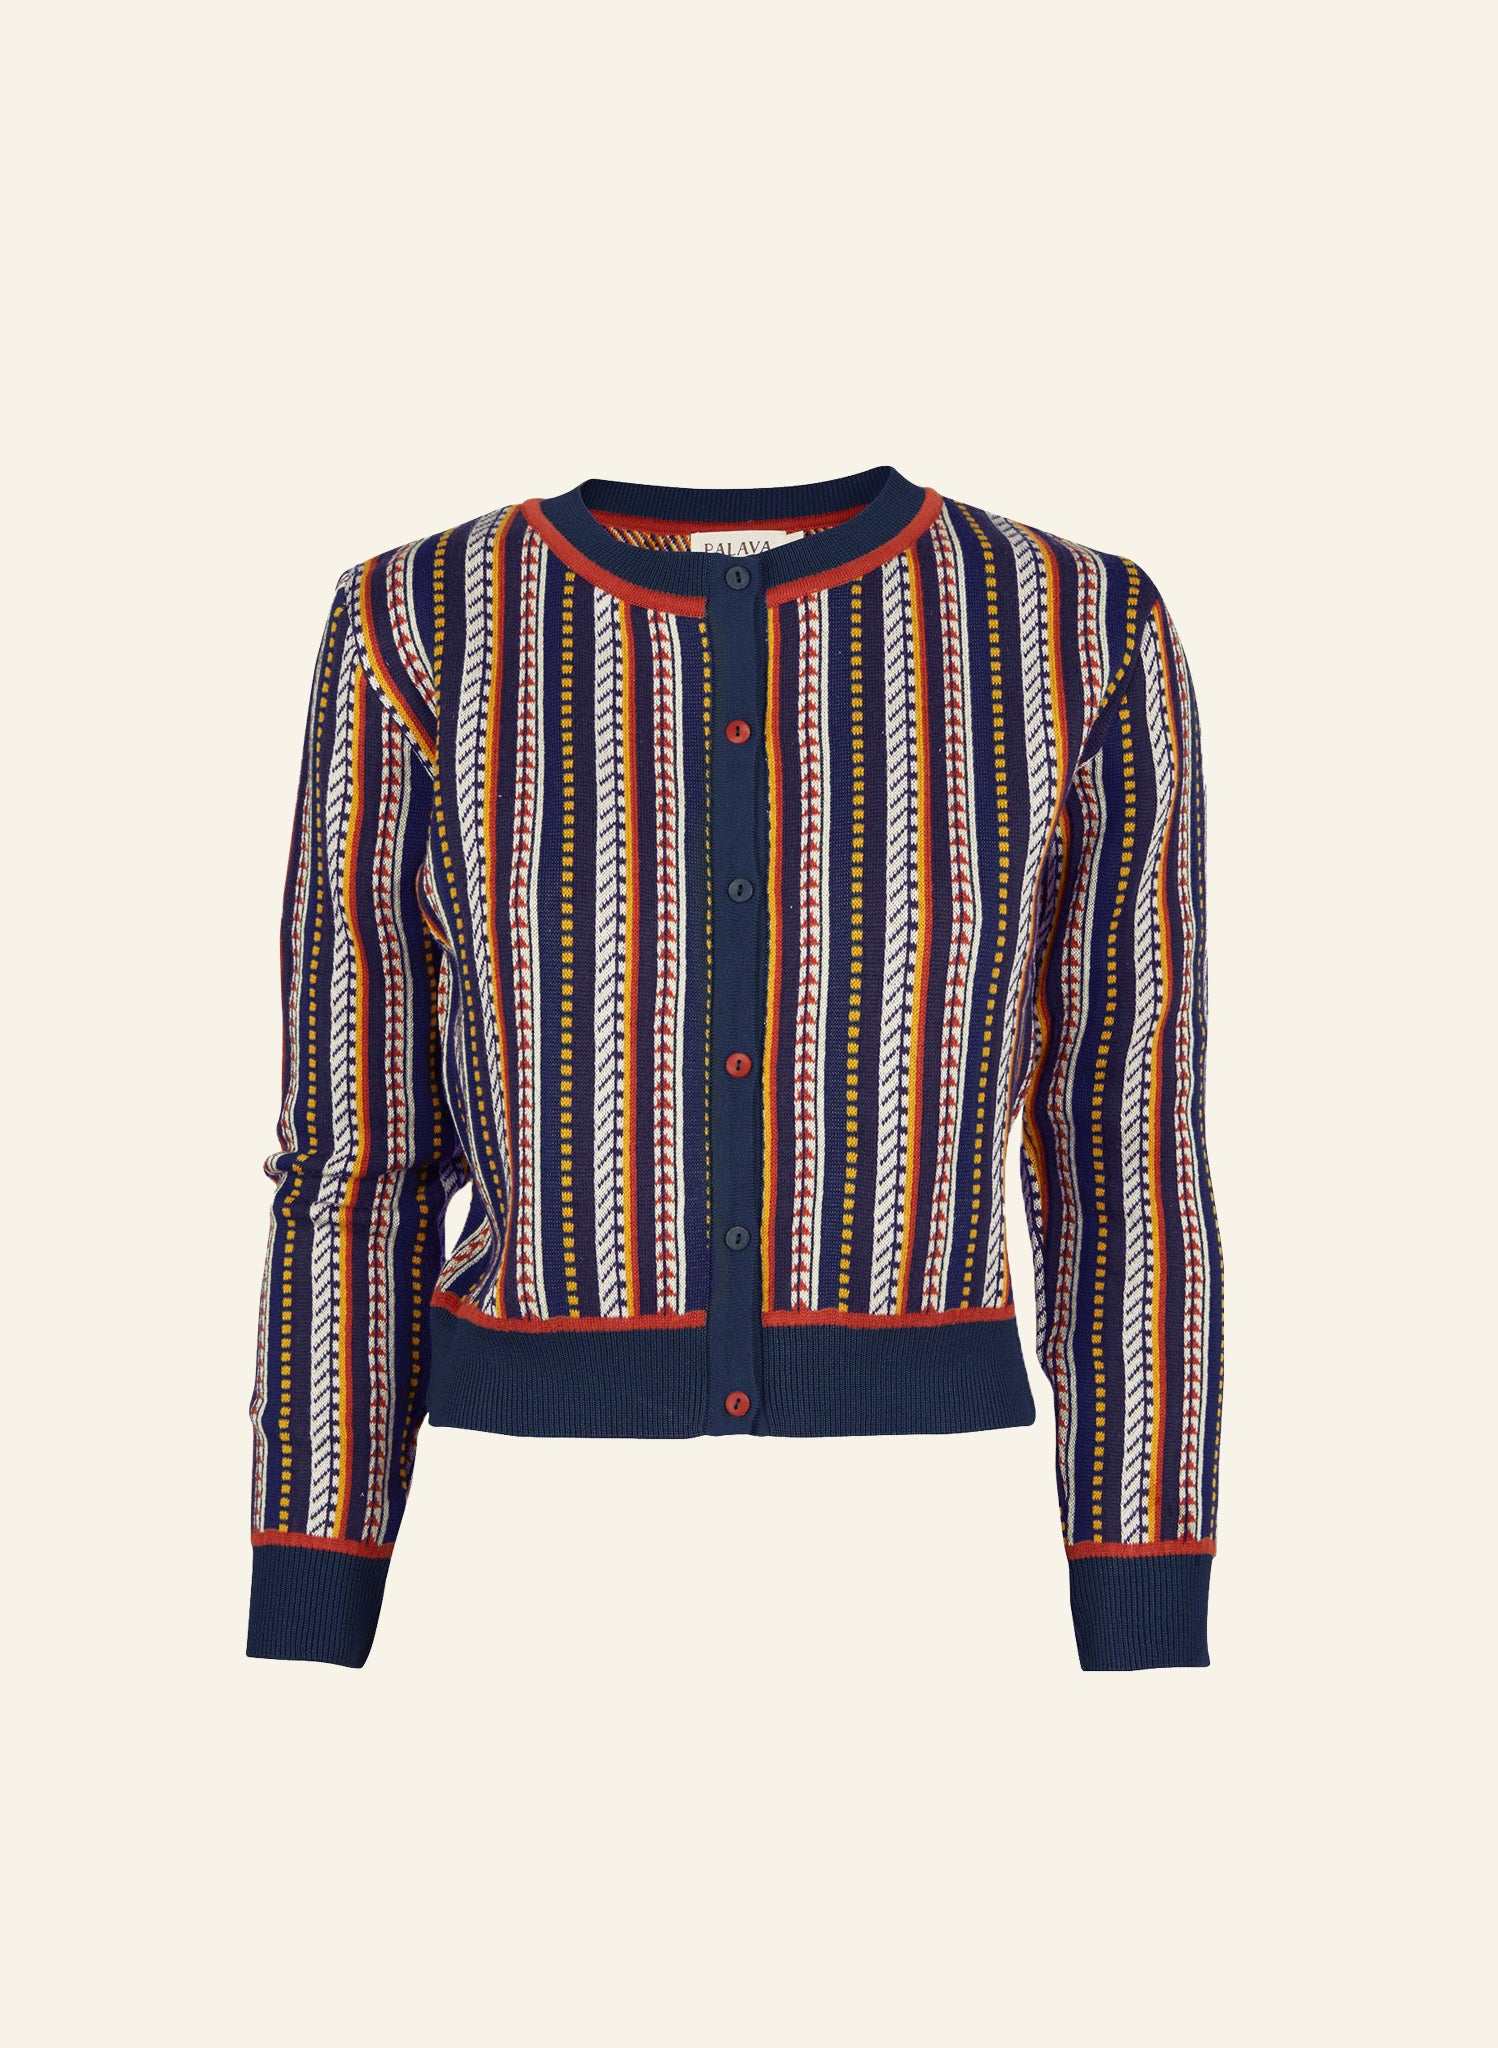 Vera - Navy Jacquard Feather Stripe Cardigan | Organic Cotton